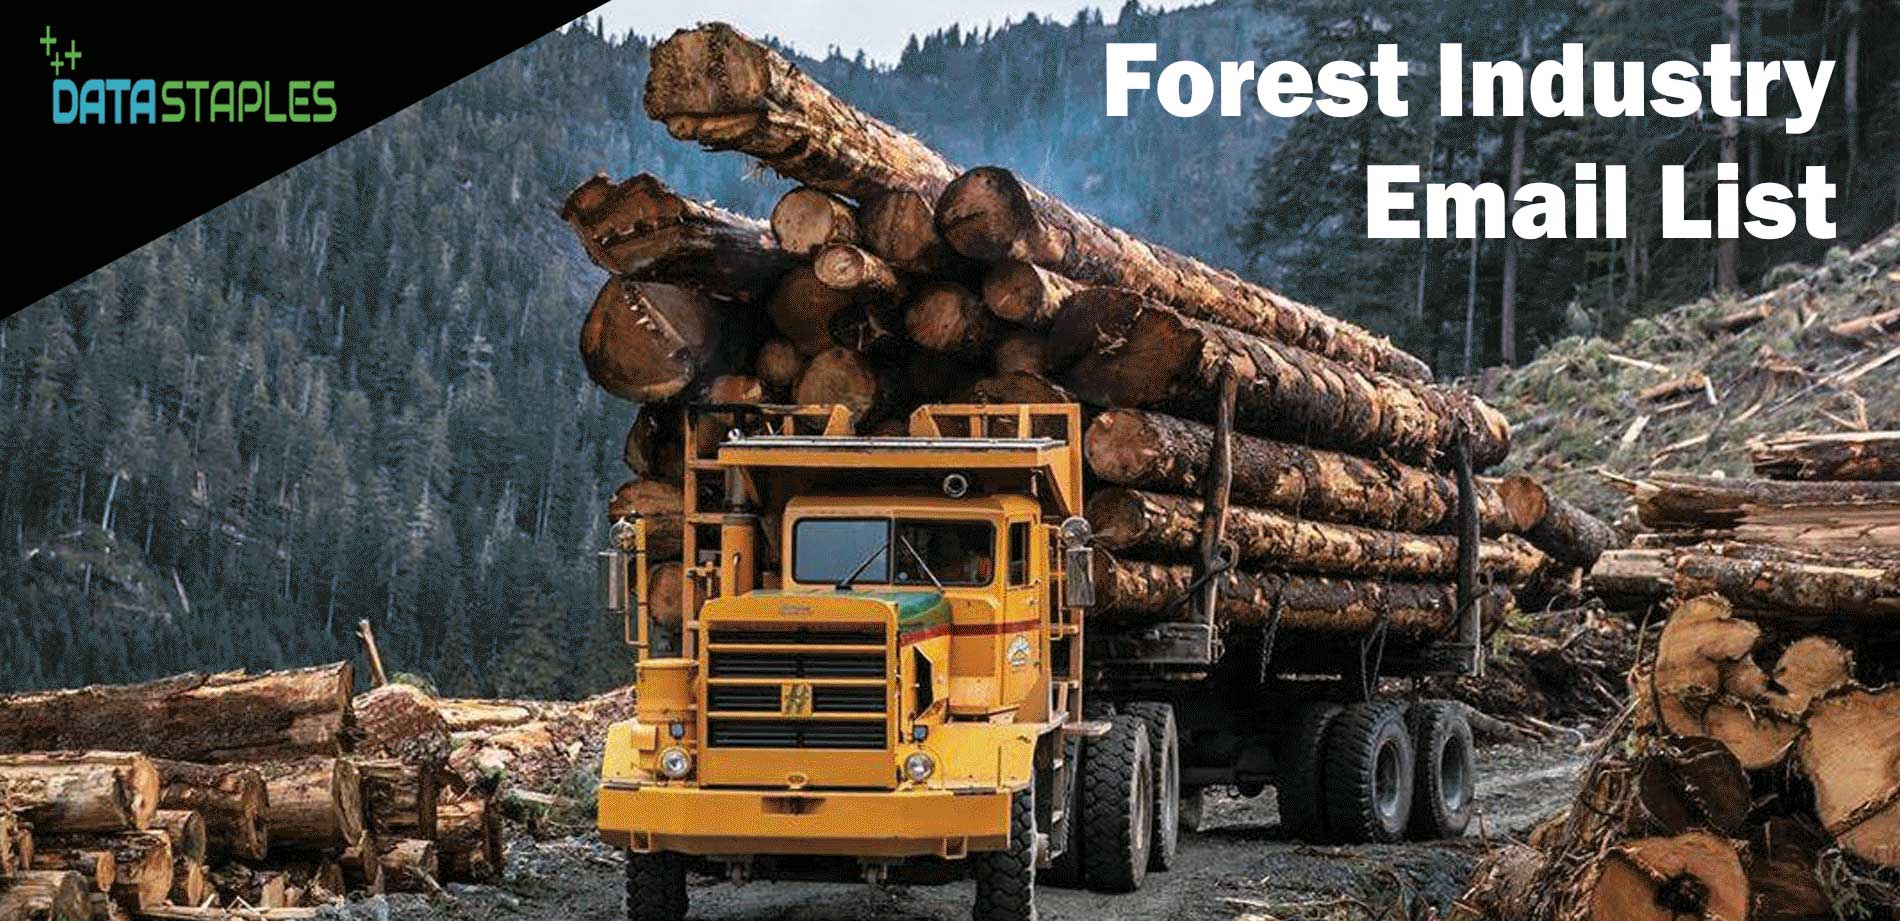 Forest Industry Email List   DataStaples